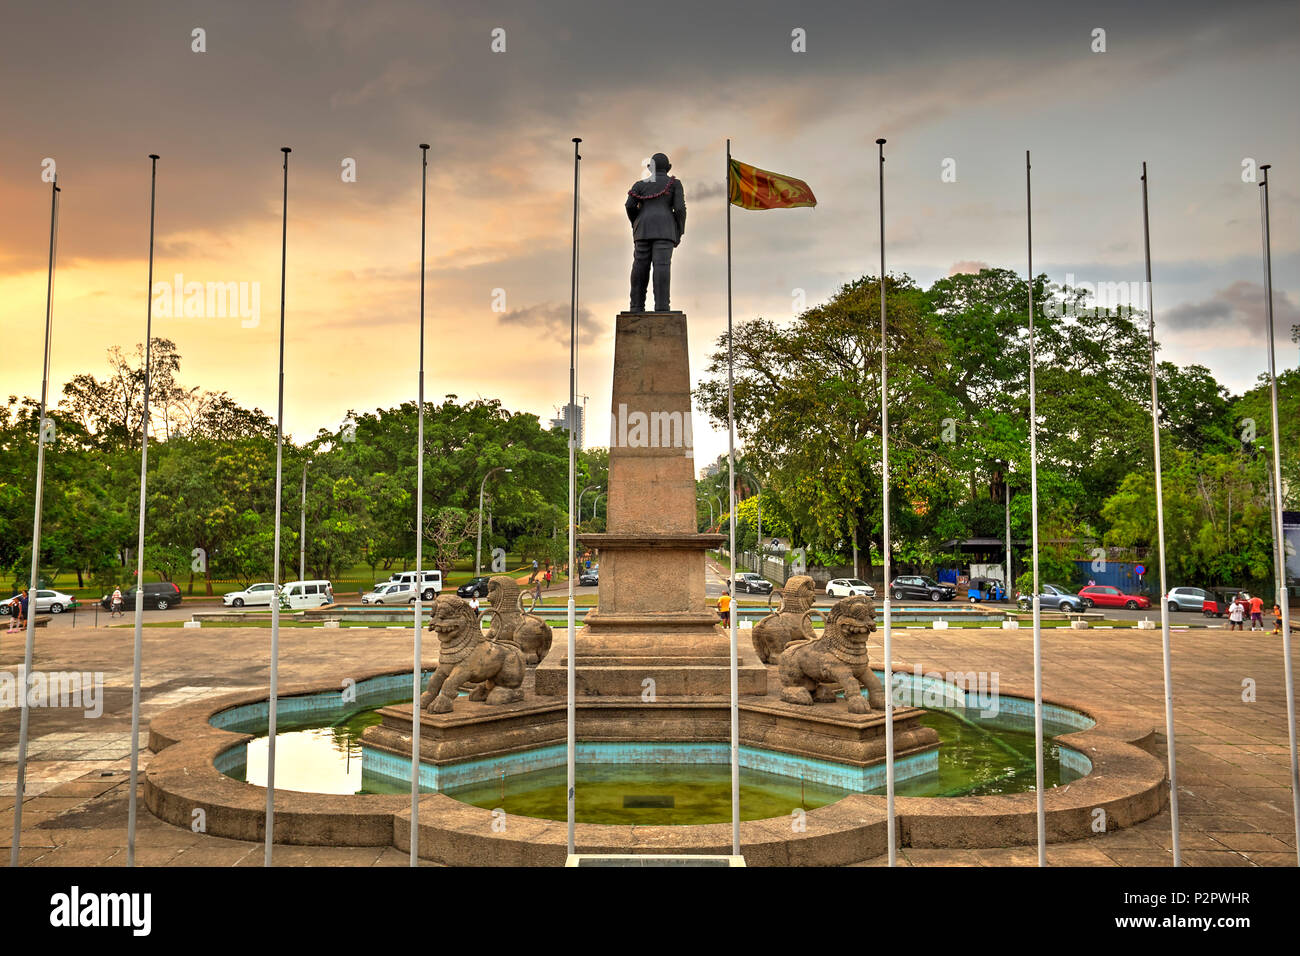 The Cinnamon square with the statue of the first Prime Minister Rt. Hon. Don Stephen Senanayake, also know as The father of the Nation. Photo taken on - Stock Image